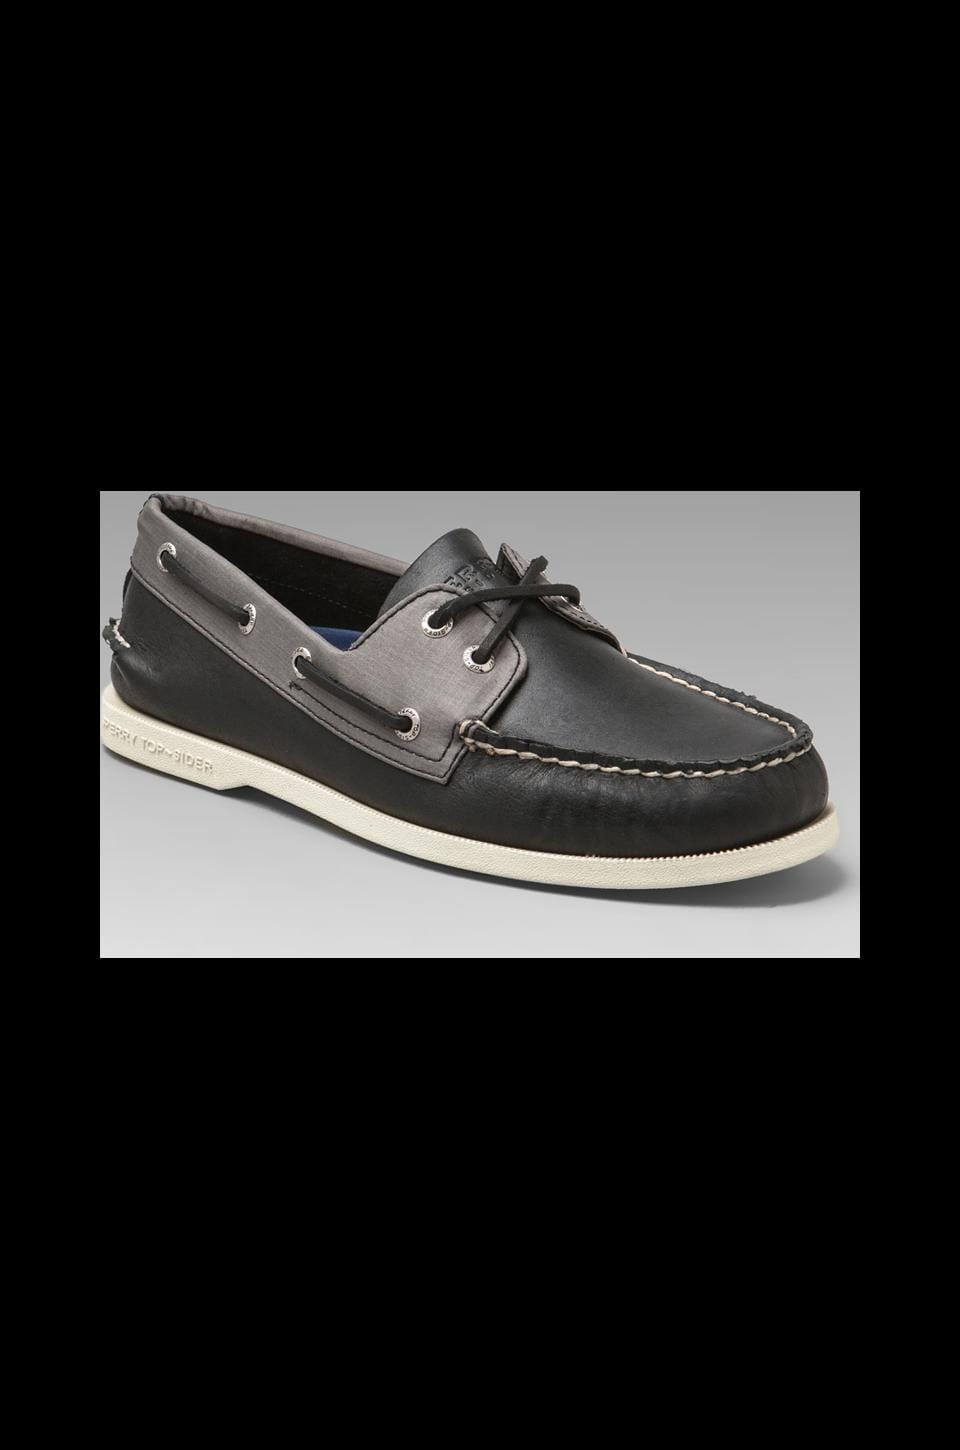 Sperry Top-Sider A/O 2-Eye in Black/Grey Nylon